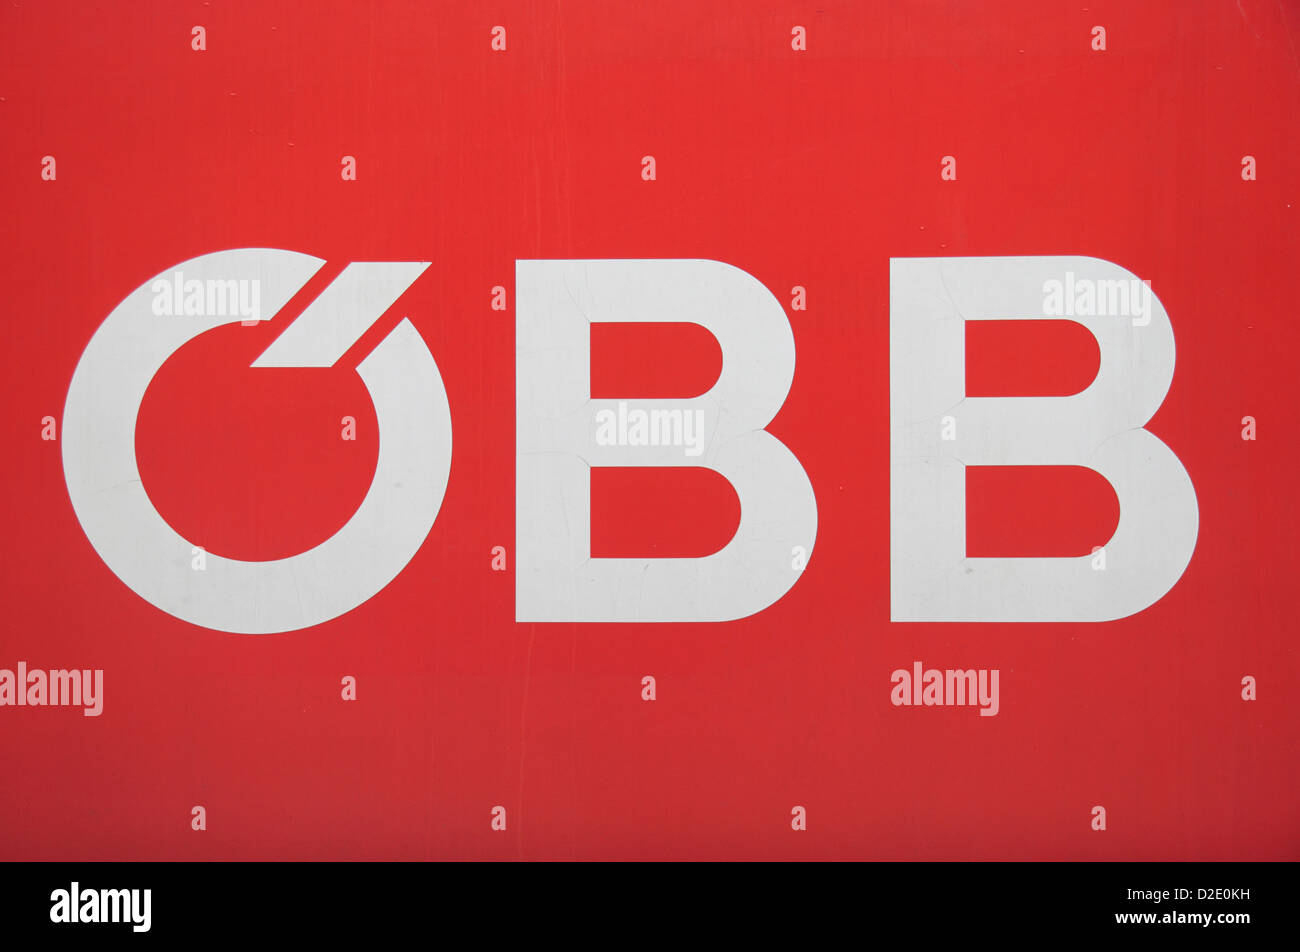 OBB, the logo of the Austrian Federal Railways, on the side of a train in Vienna, Austria. - Stock Image